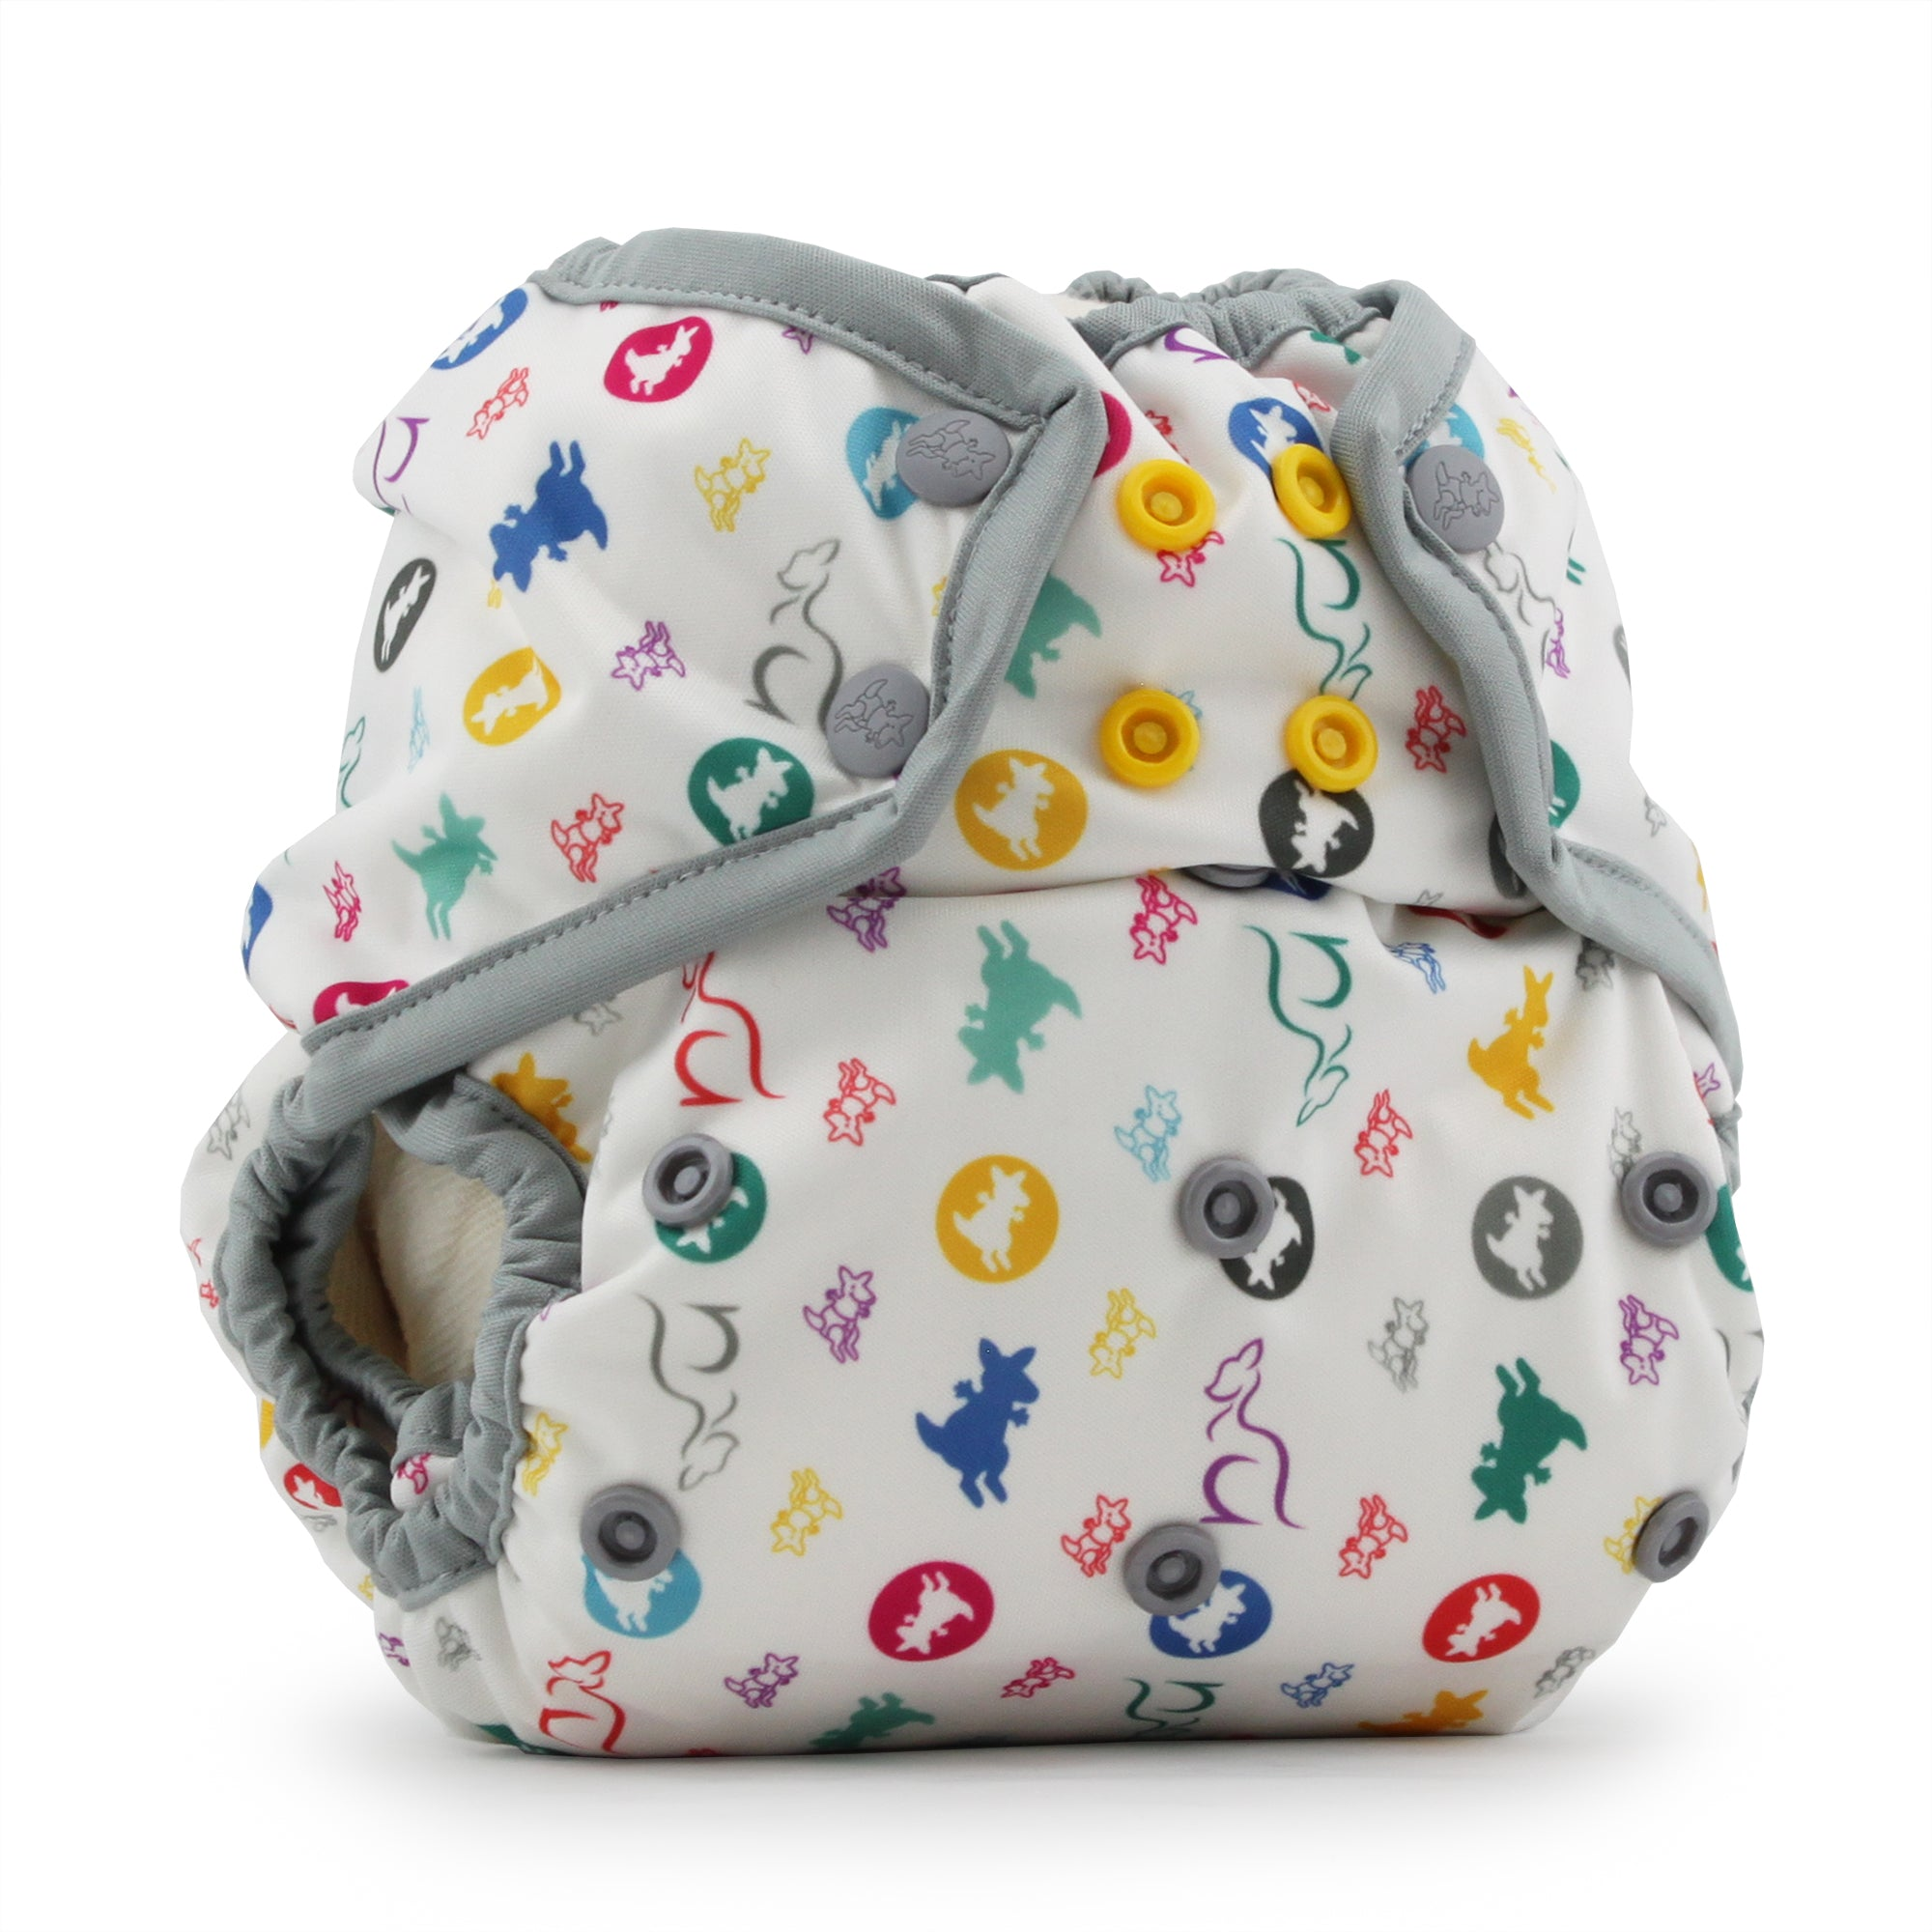 Rumparooz-Roozy-Cloth-Diaper-Cover